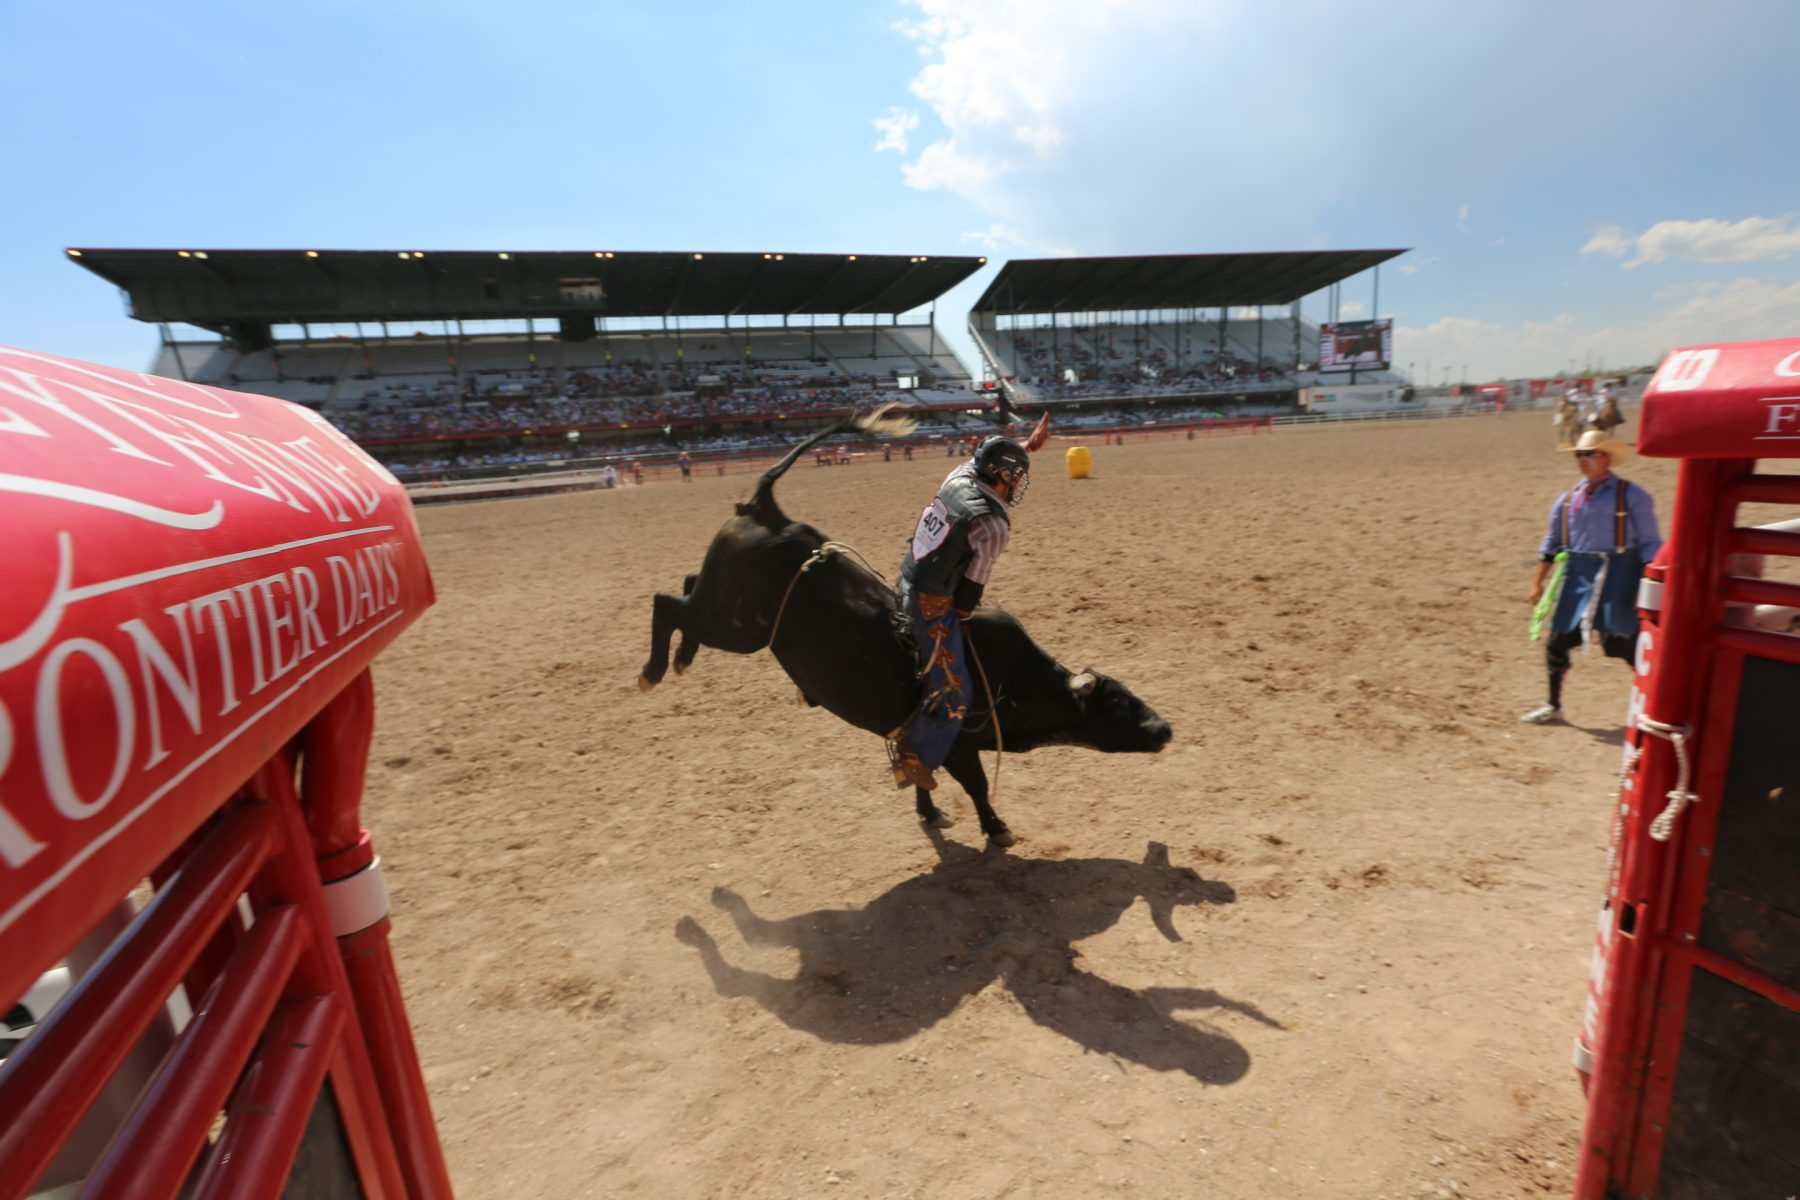 Il rodeo Frontier Days di Cheyenne, Wyoming